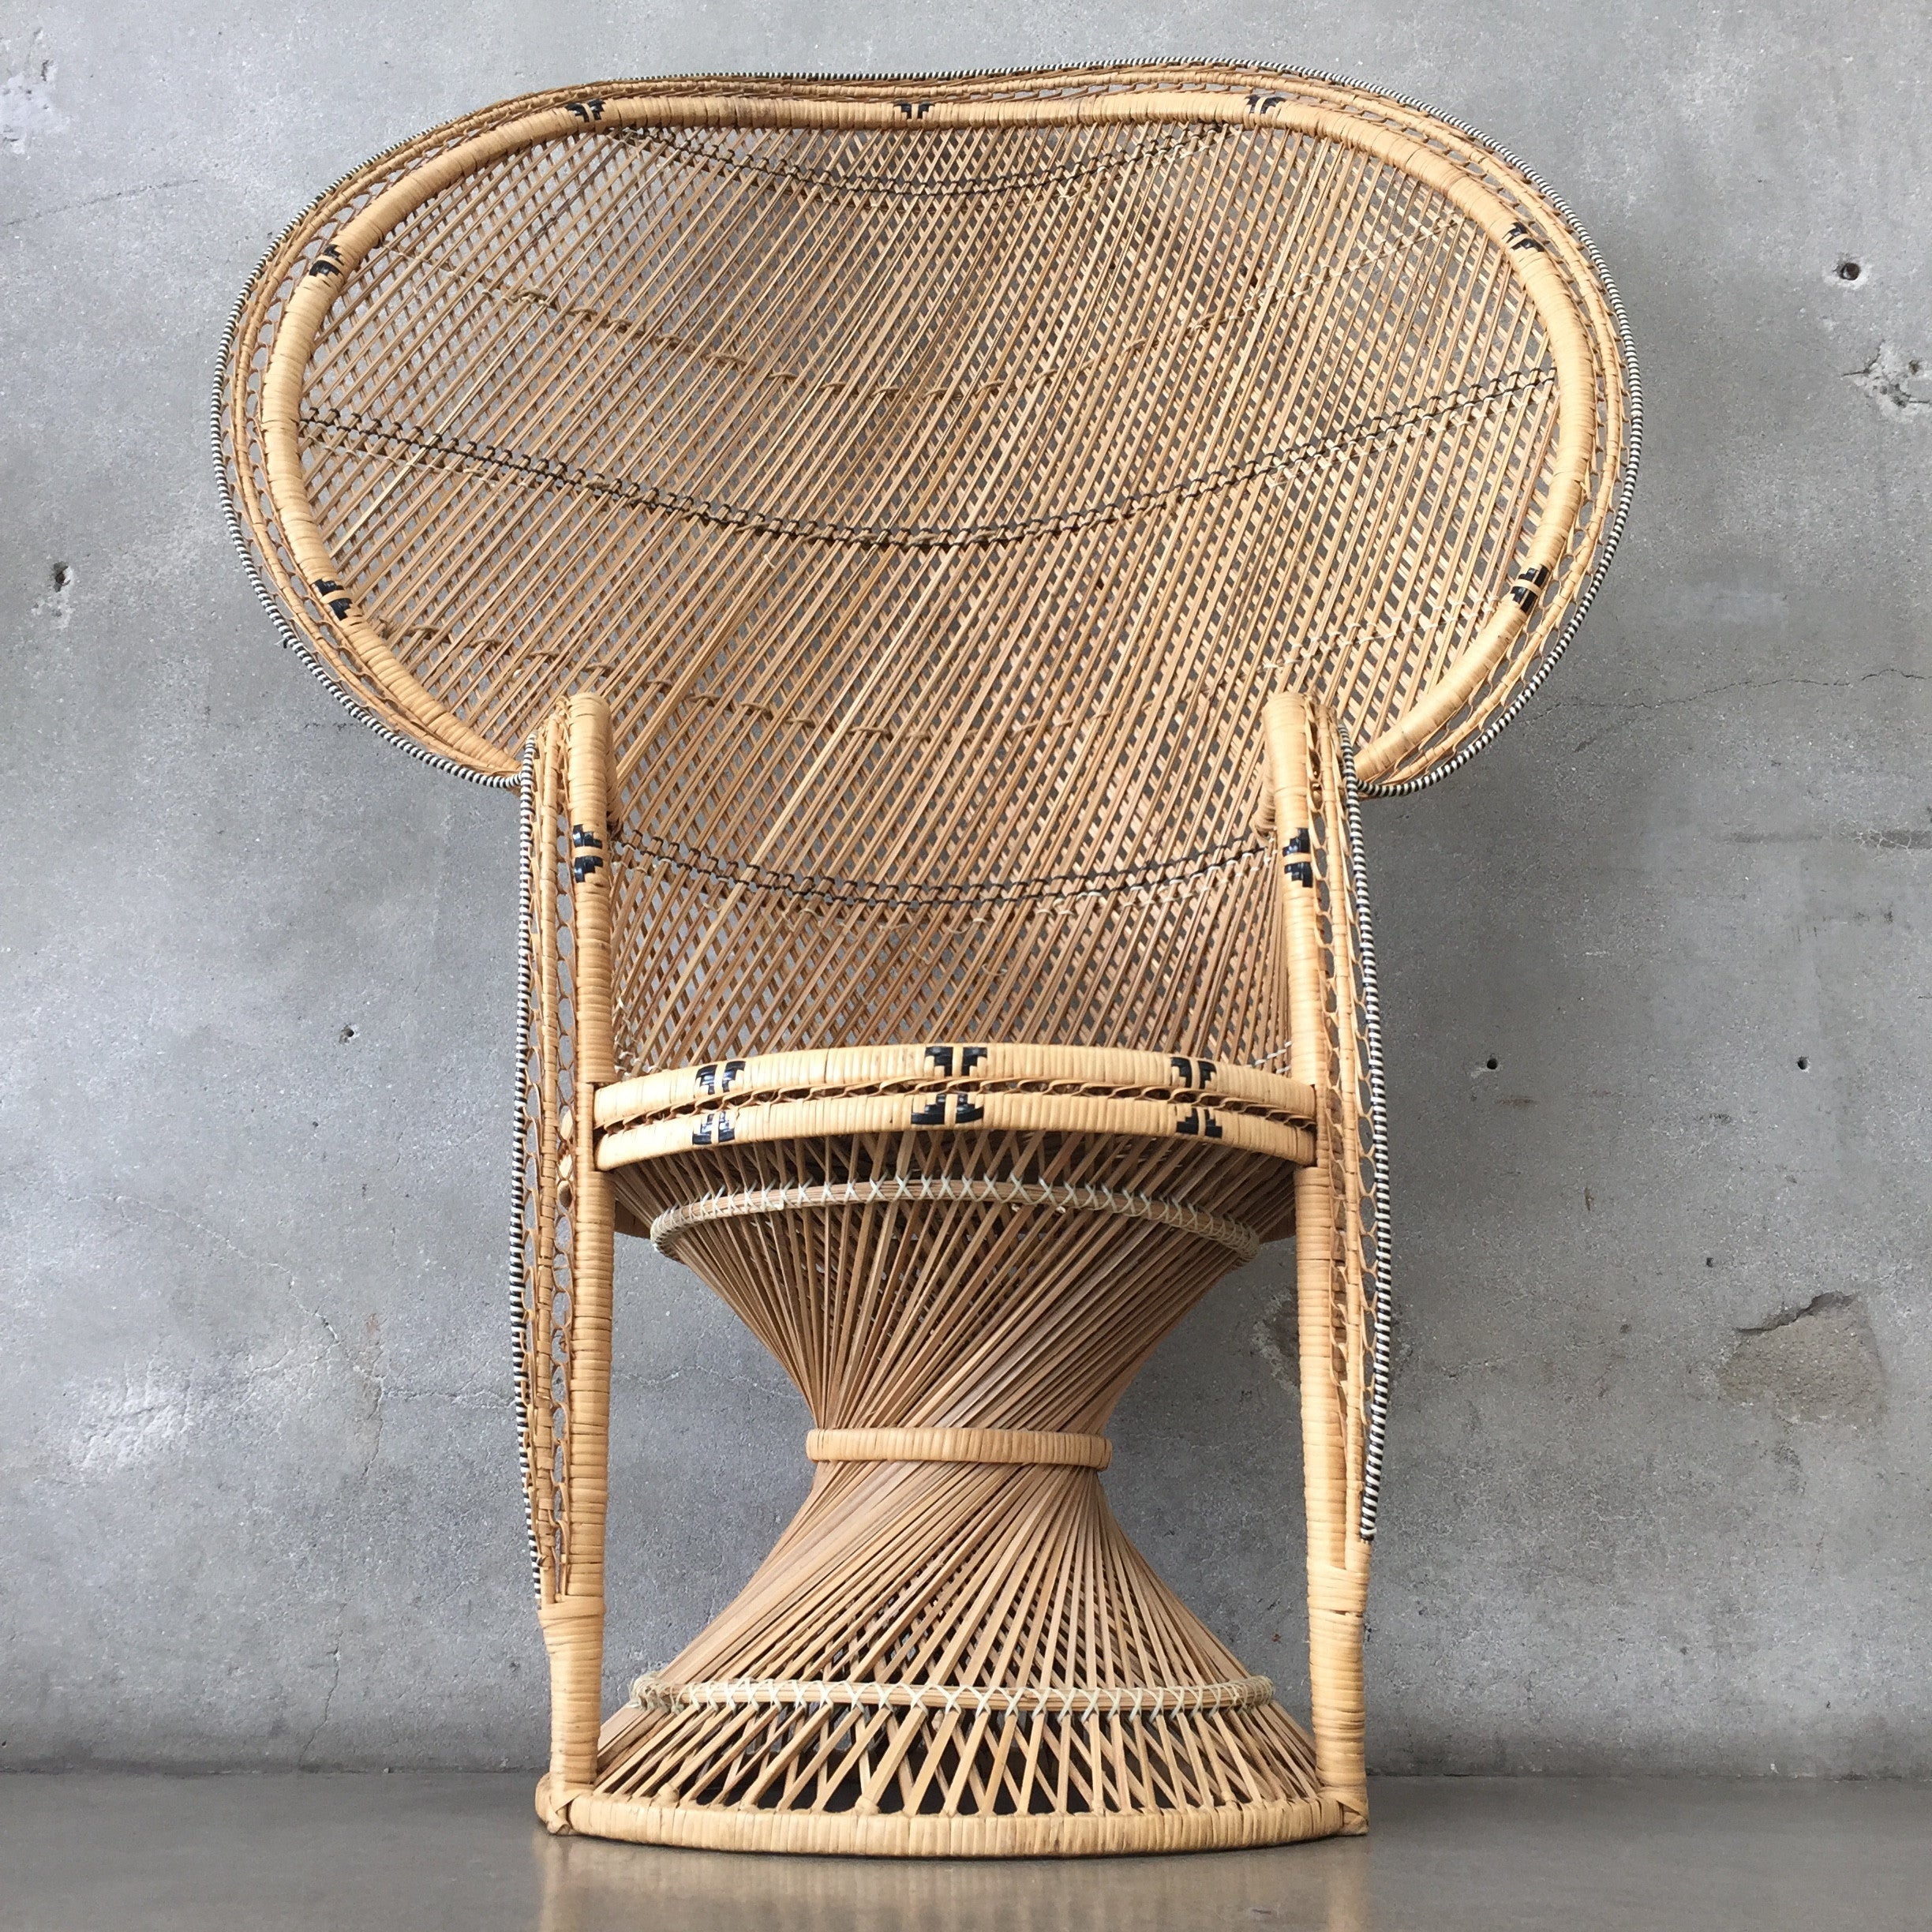 Vintage Rattan Peacock Chair Vintage Rattan Peacock Chair ...